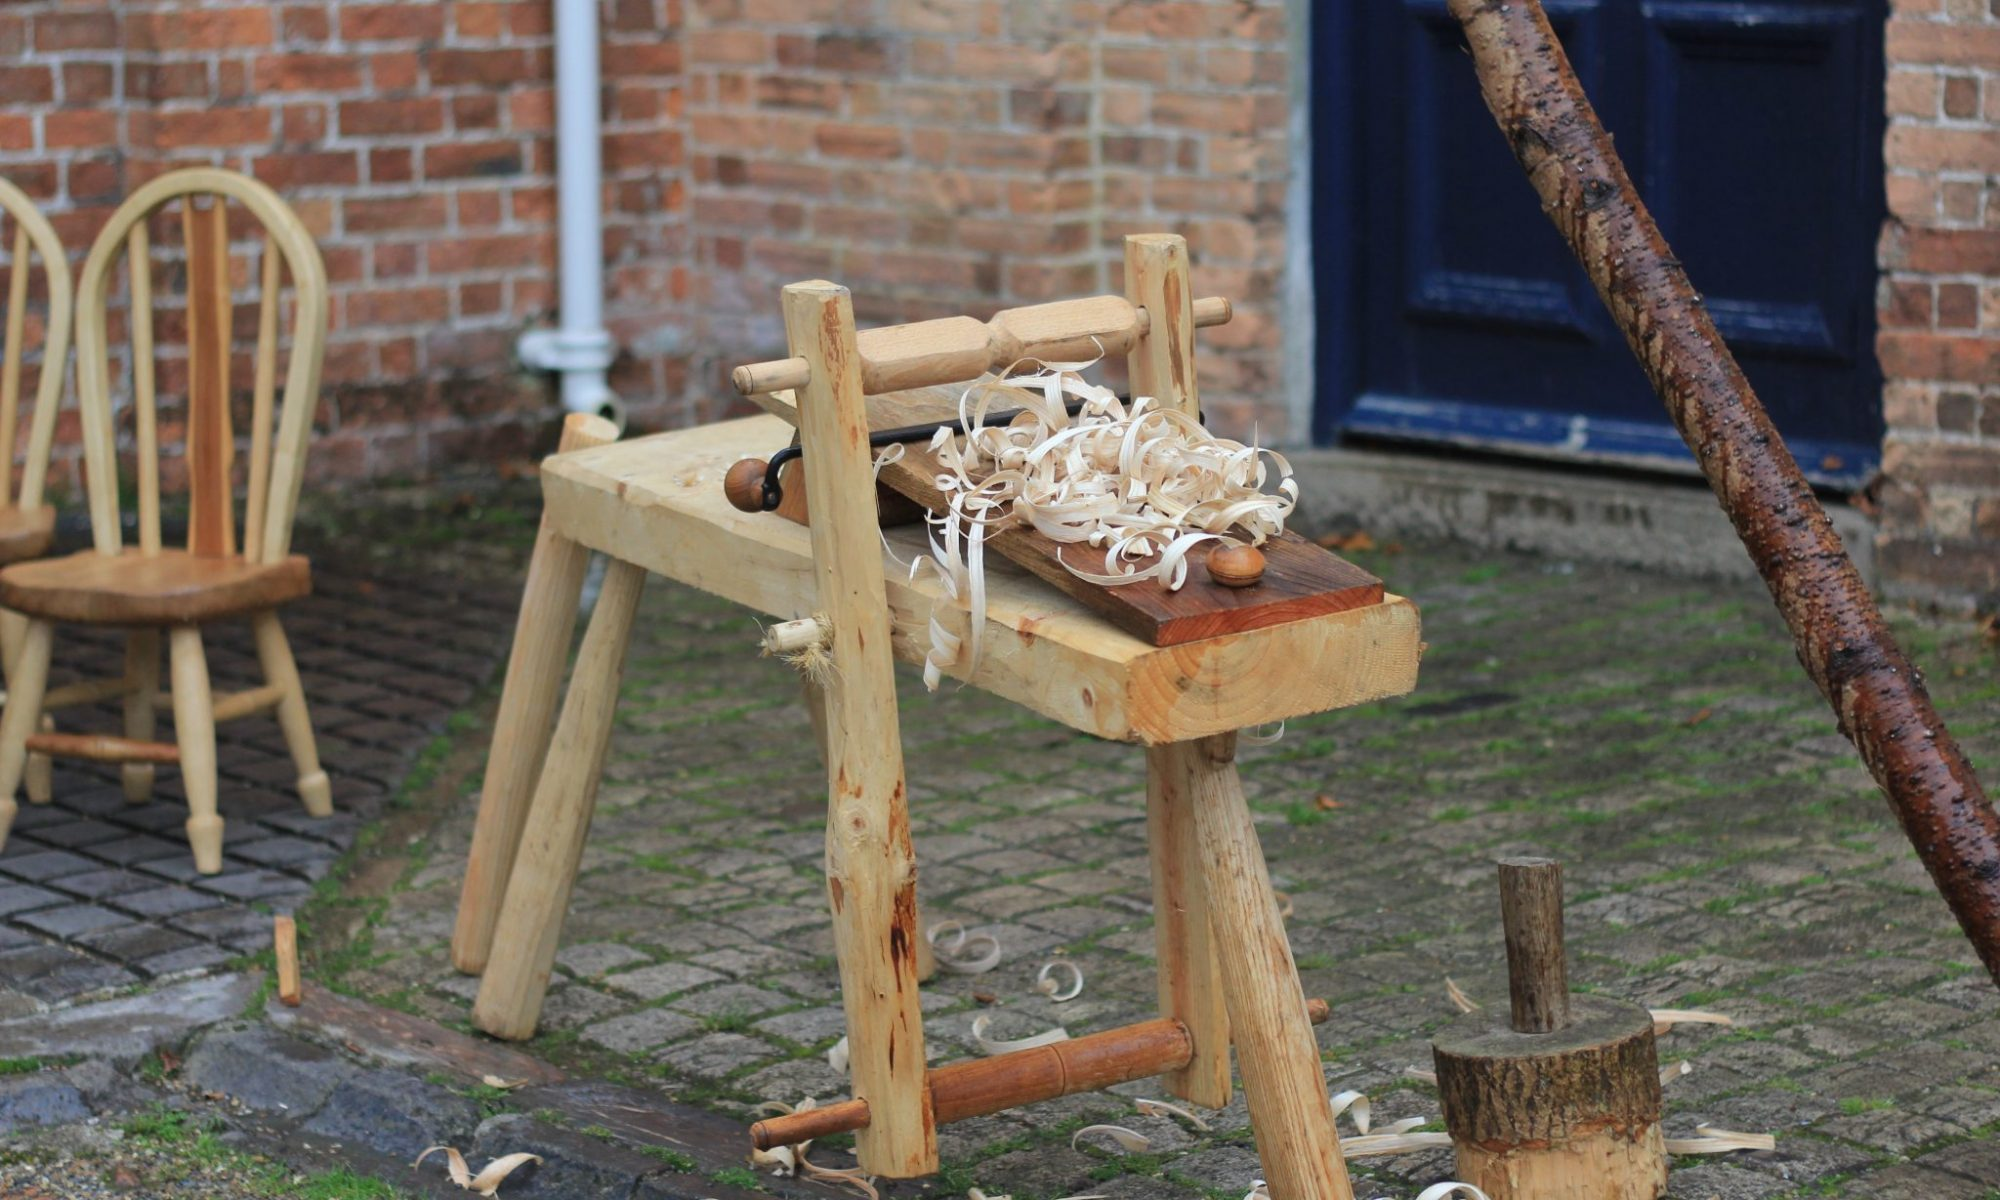 Make a shave horse in 2 days green woodworking courses in devon with alasdair kilpatrick